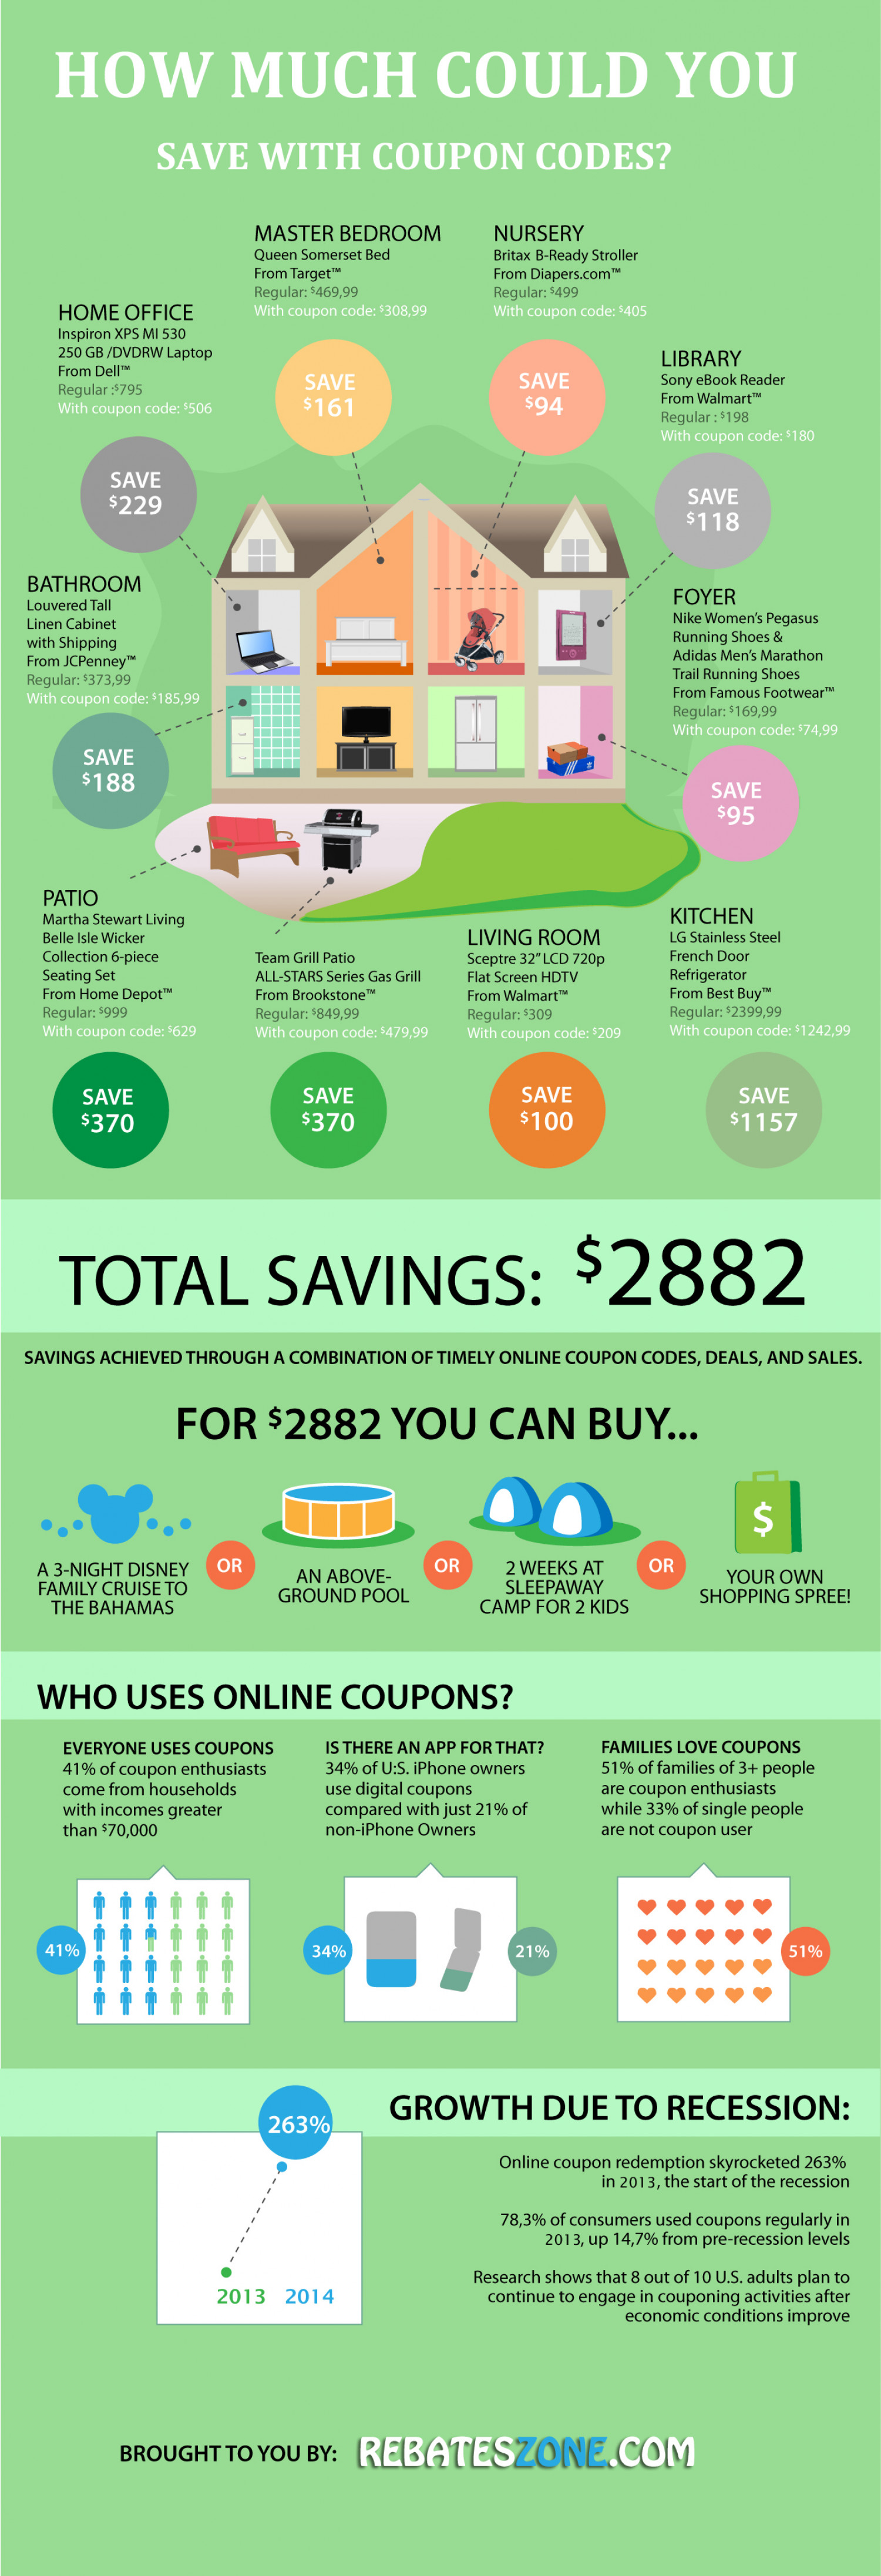 How much you could save by using coupon codes.? Infographic